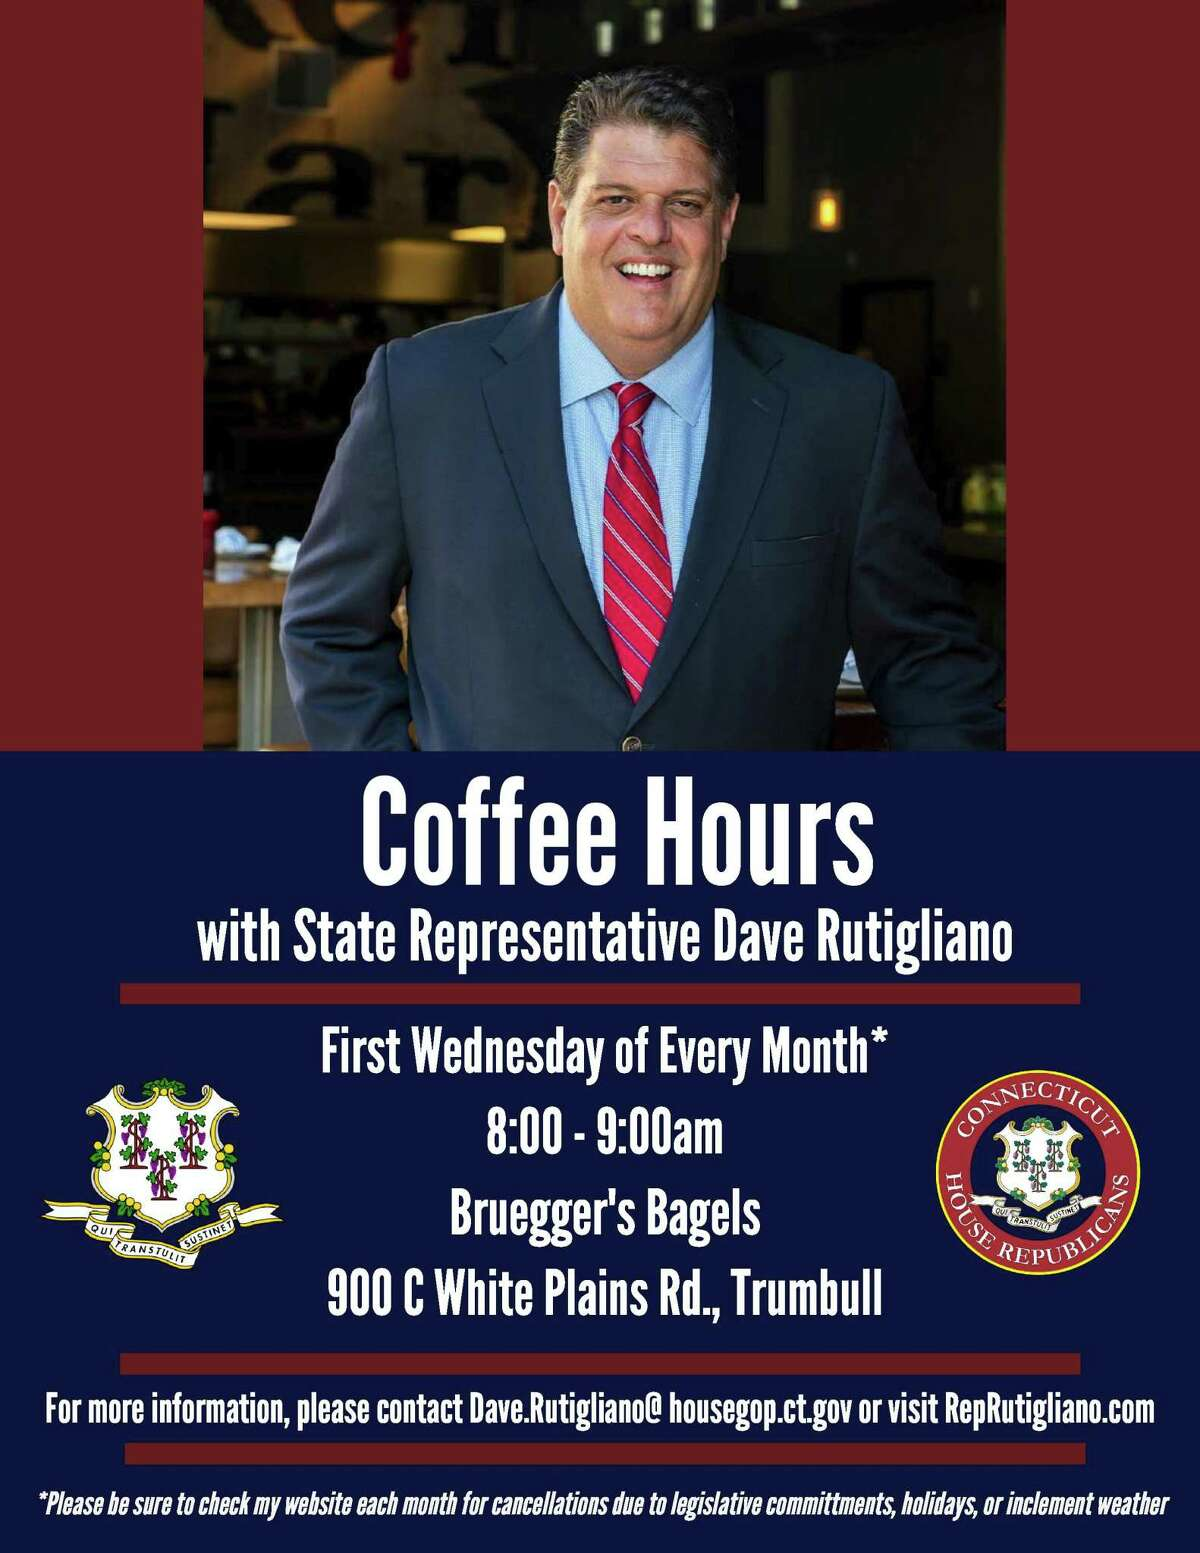 State Rep. David Rutigliano (R-123) will host a coffee hour at Bruegger's Bagels the first Wednesday of every month.